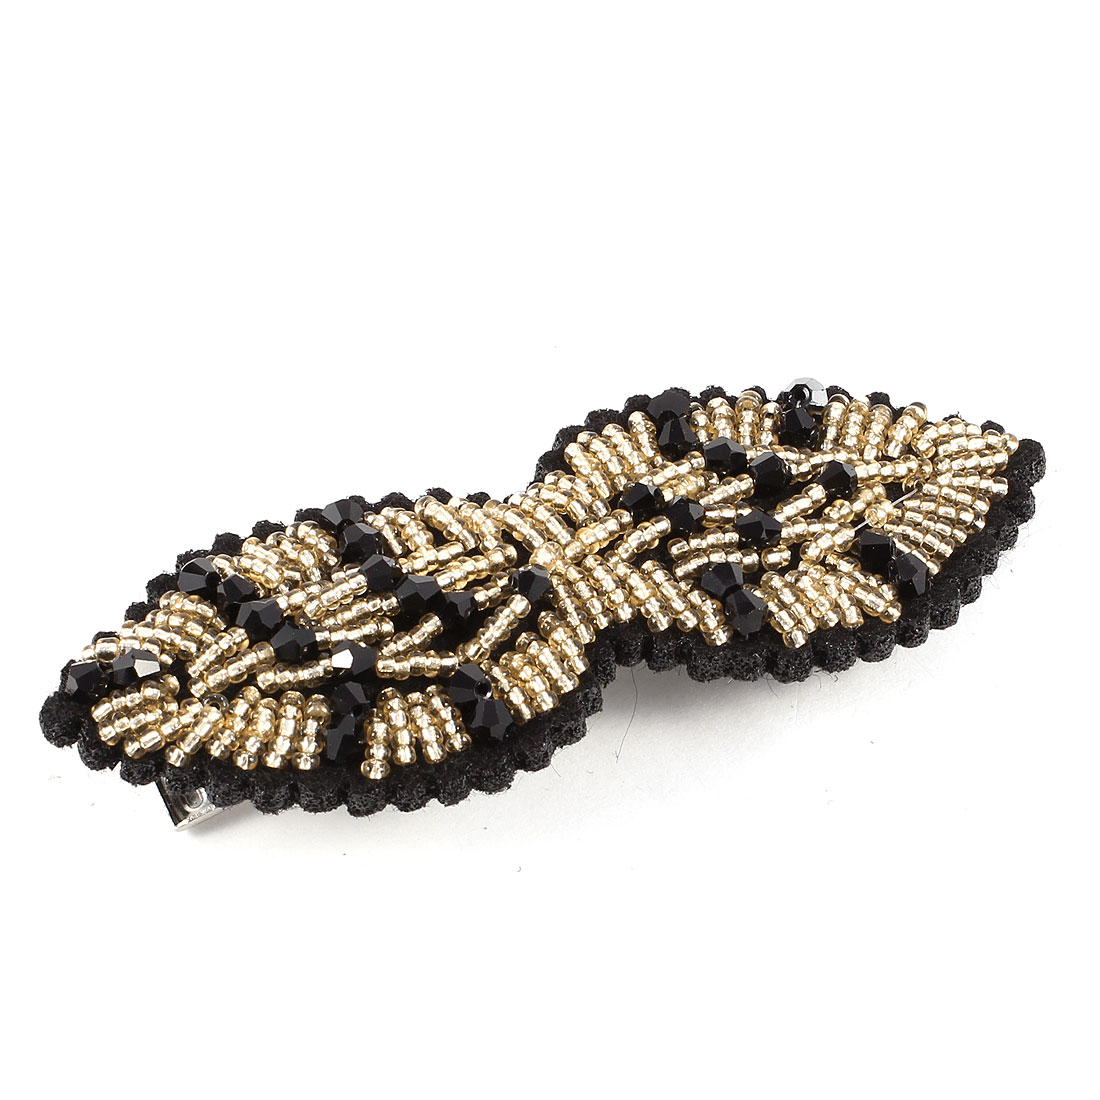 Handicraft Plastic Beads Decor Alligator Hair Clip Black Silver Tone for Lady